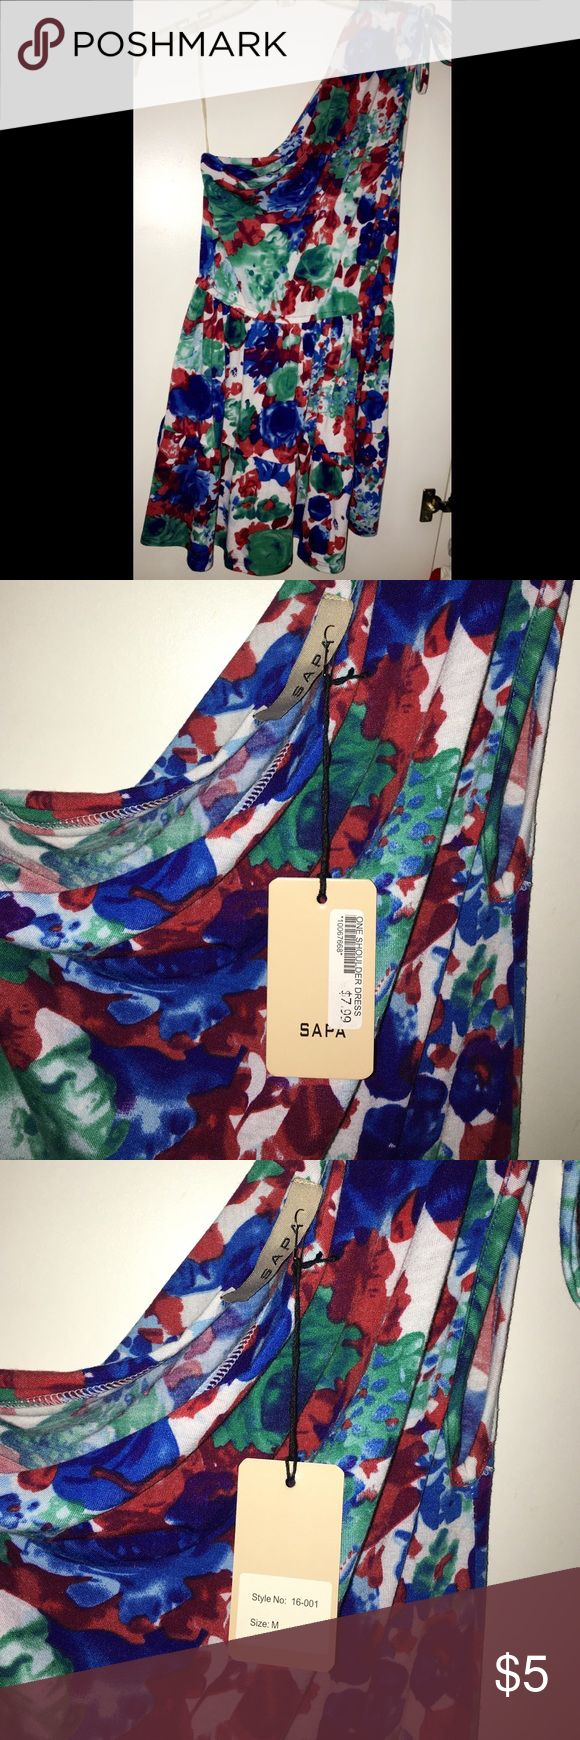 Multi Color One Shoulder Dress - New + tag Brand New (with tag), NEVER worn. One shoulder multi color dress. Girls/junior size medium. Great spring/summer dress. Sold as is. Dresses Casual